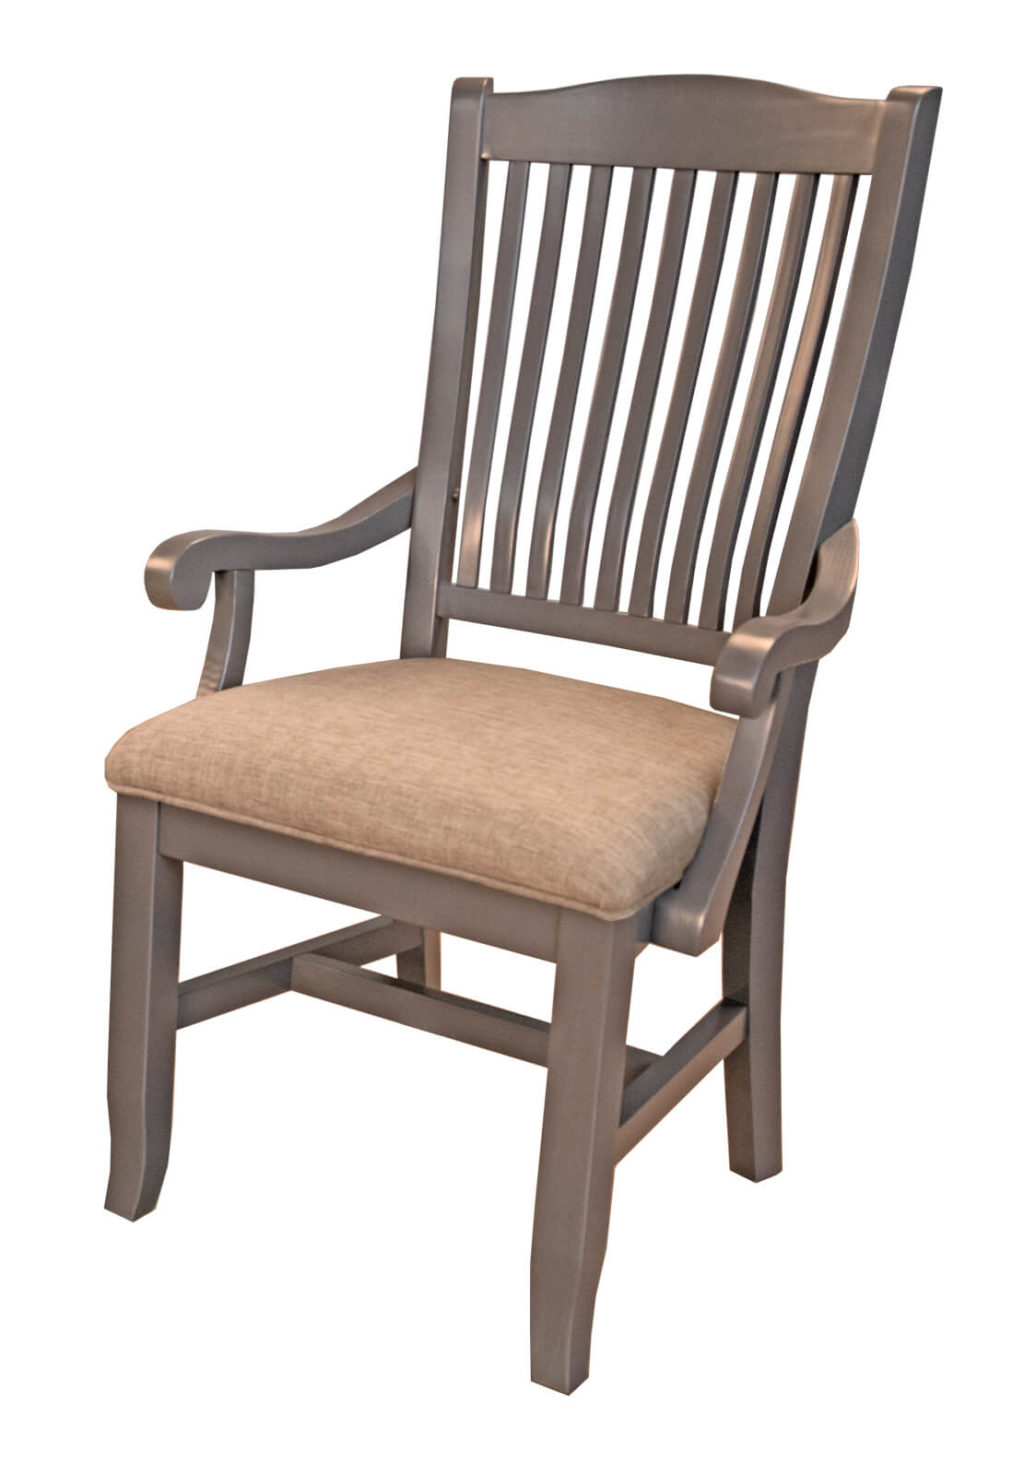 AAmerica Port Townsend Upholstered Chair W: Arms